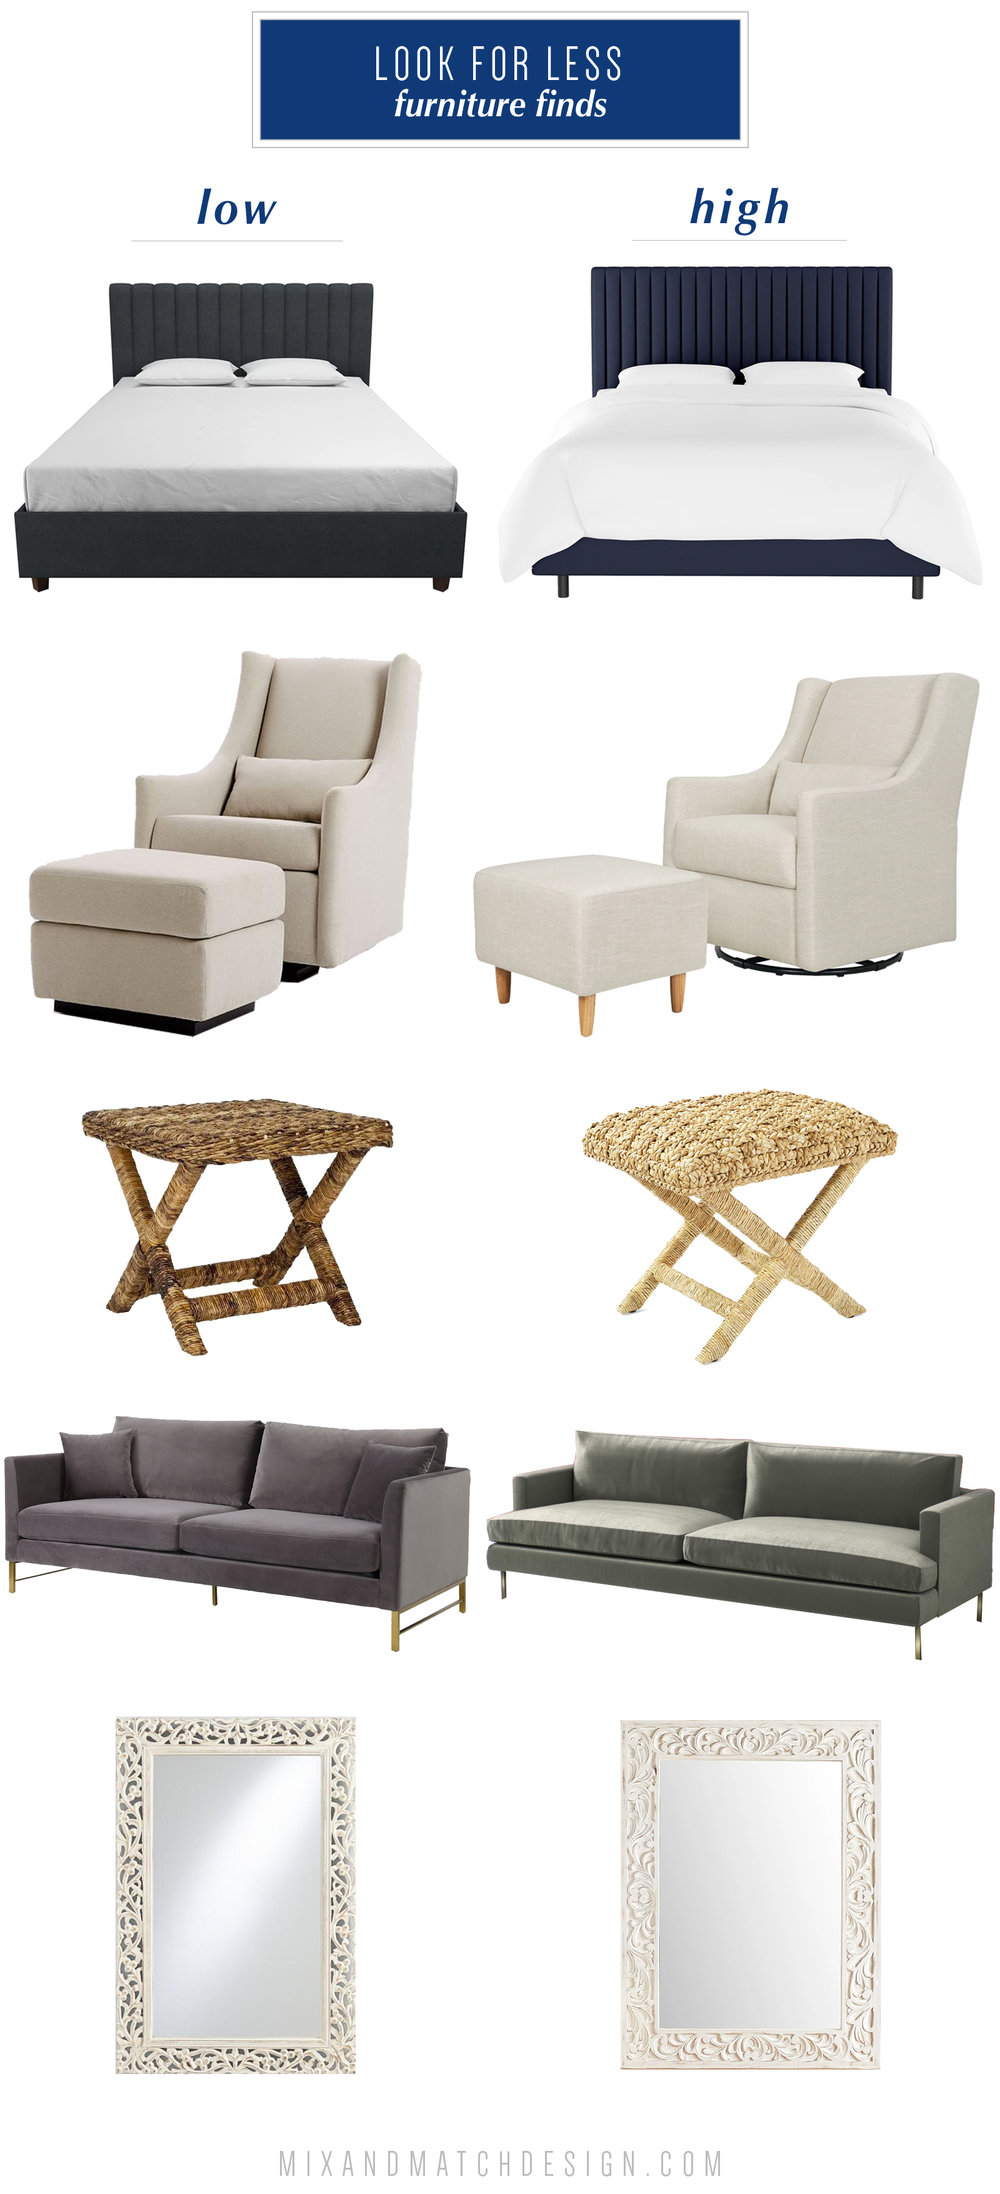 Get the look for less or decide to splurge! Come see the budget-friendly and spend-worthy pieces of furniture in this blog post including the high/low sources for a channel tufted bed, wingback glider, wicker x-base stool ottoman, velvet sofa with brass legs, and whitewashed carved wood mirror.